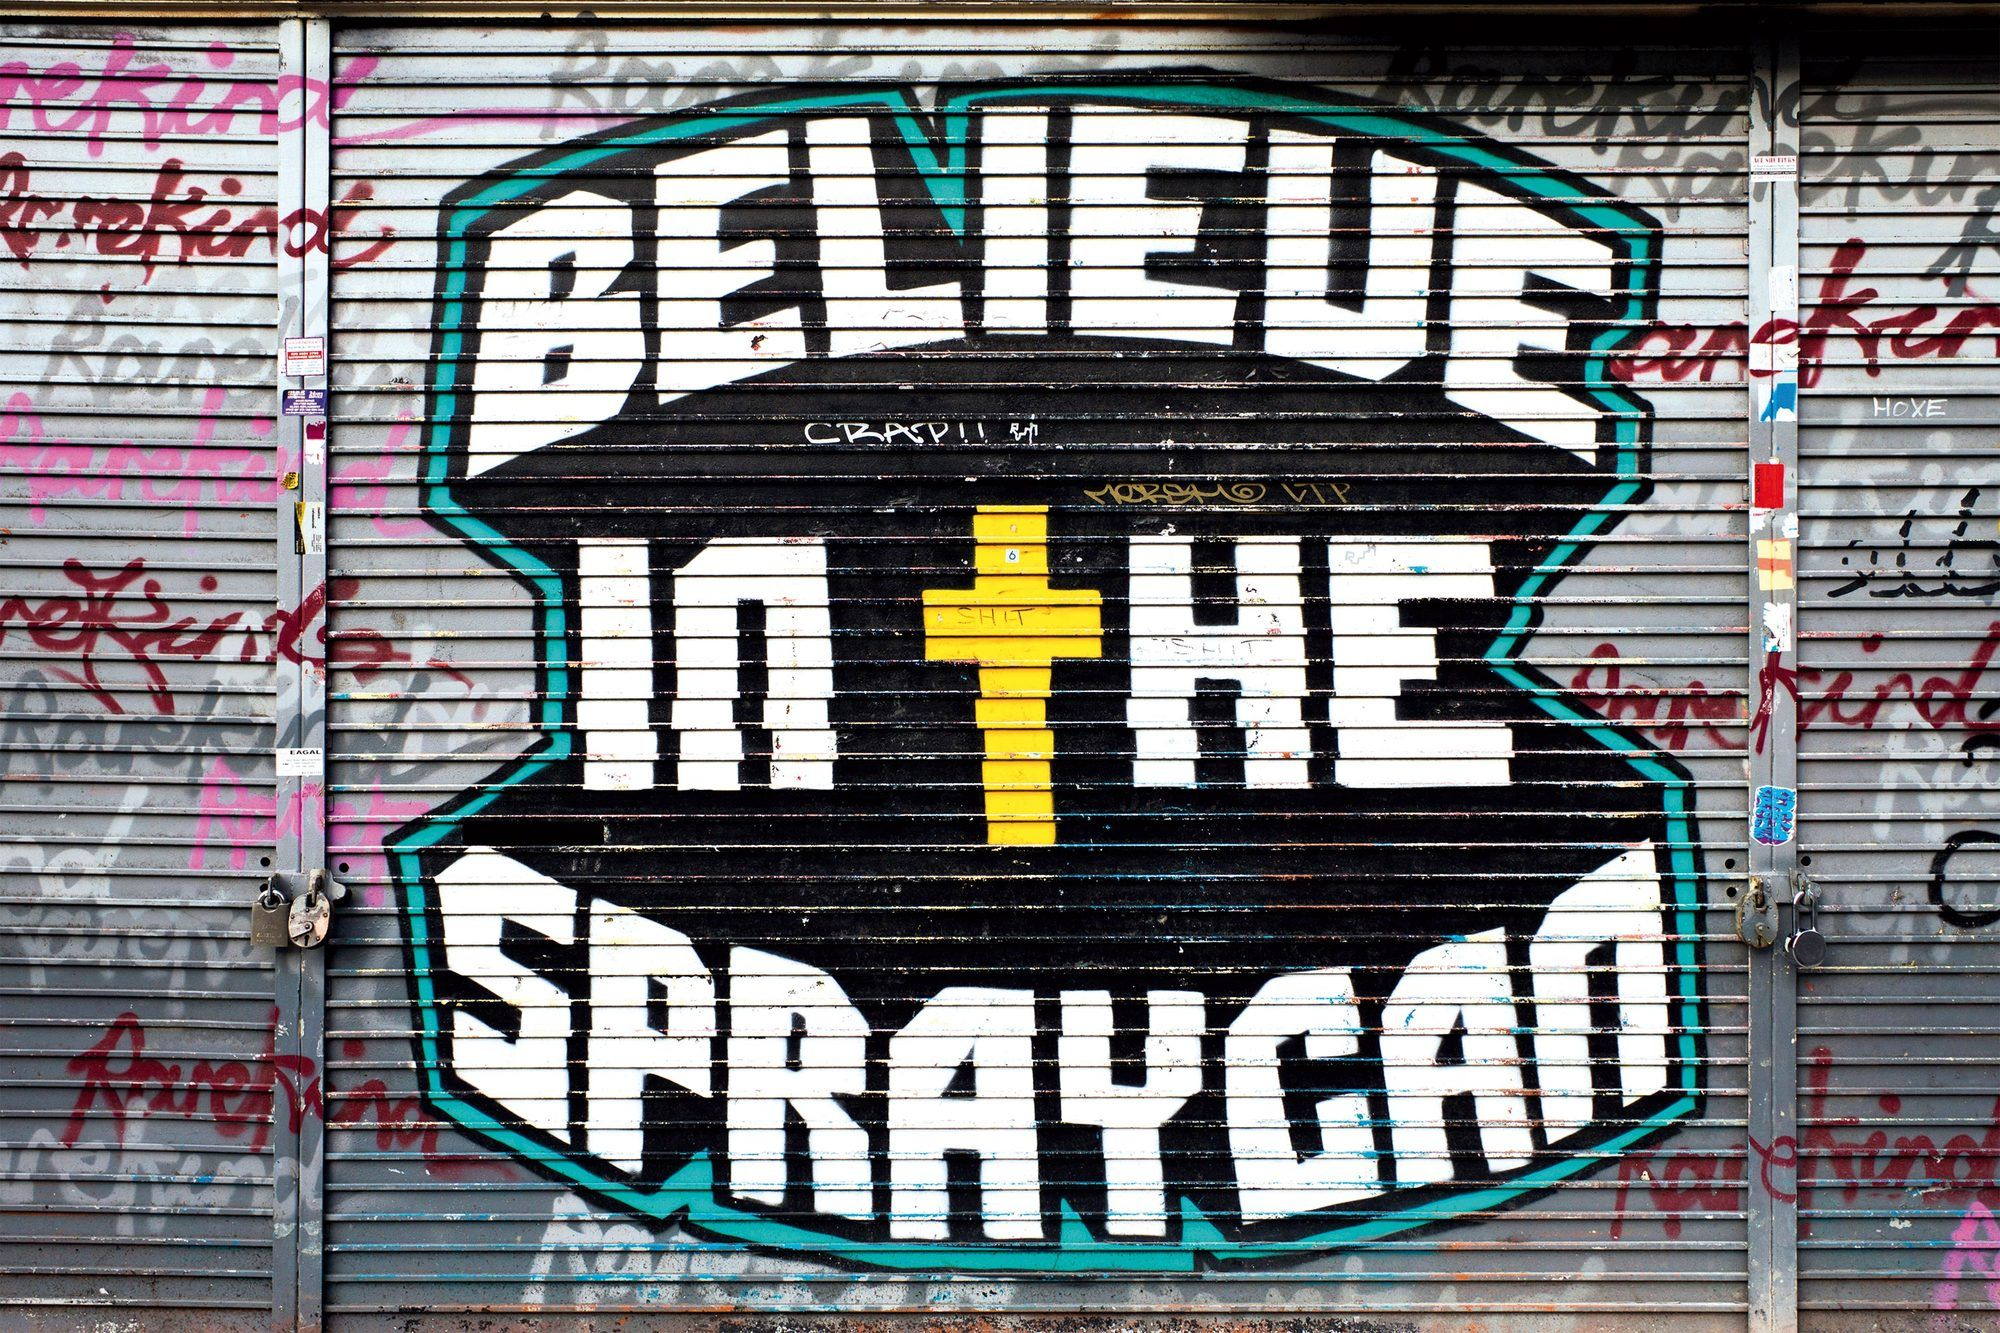 Believe in the spraycan